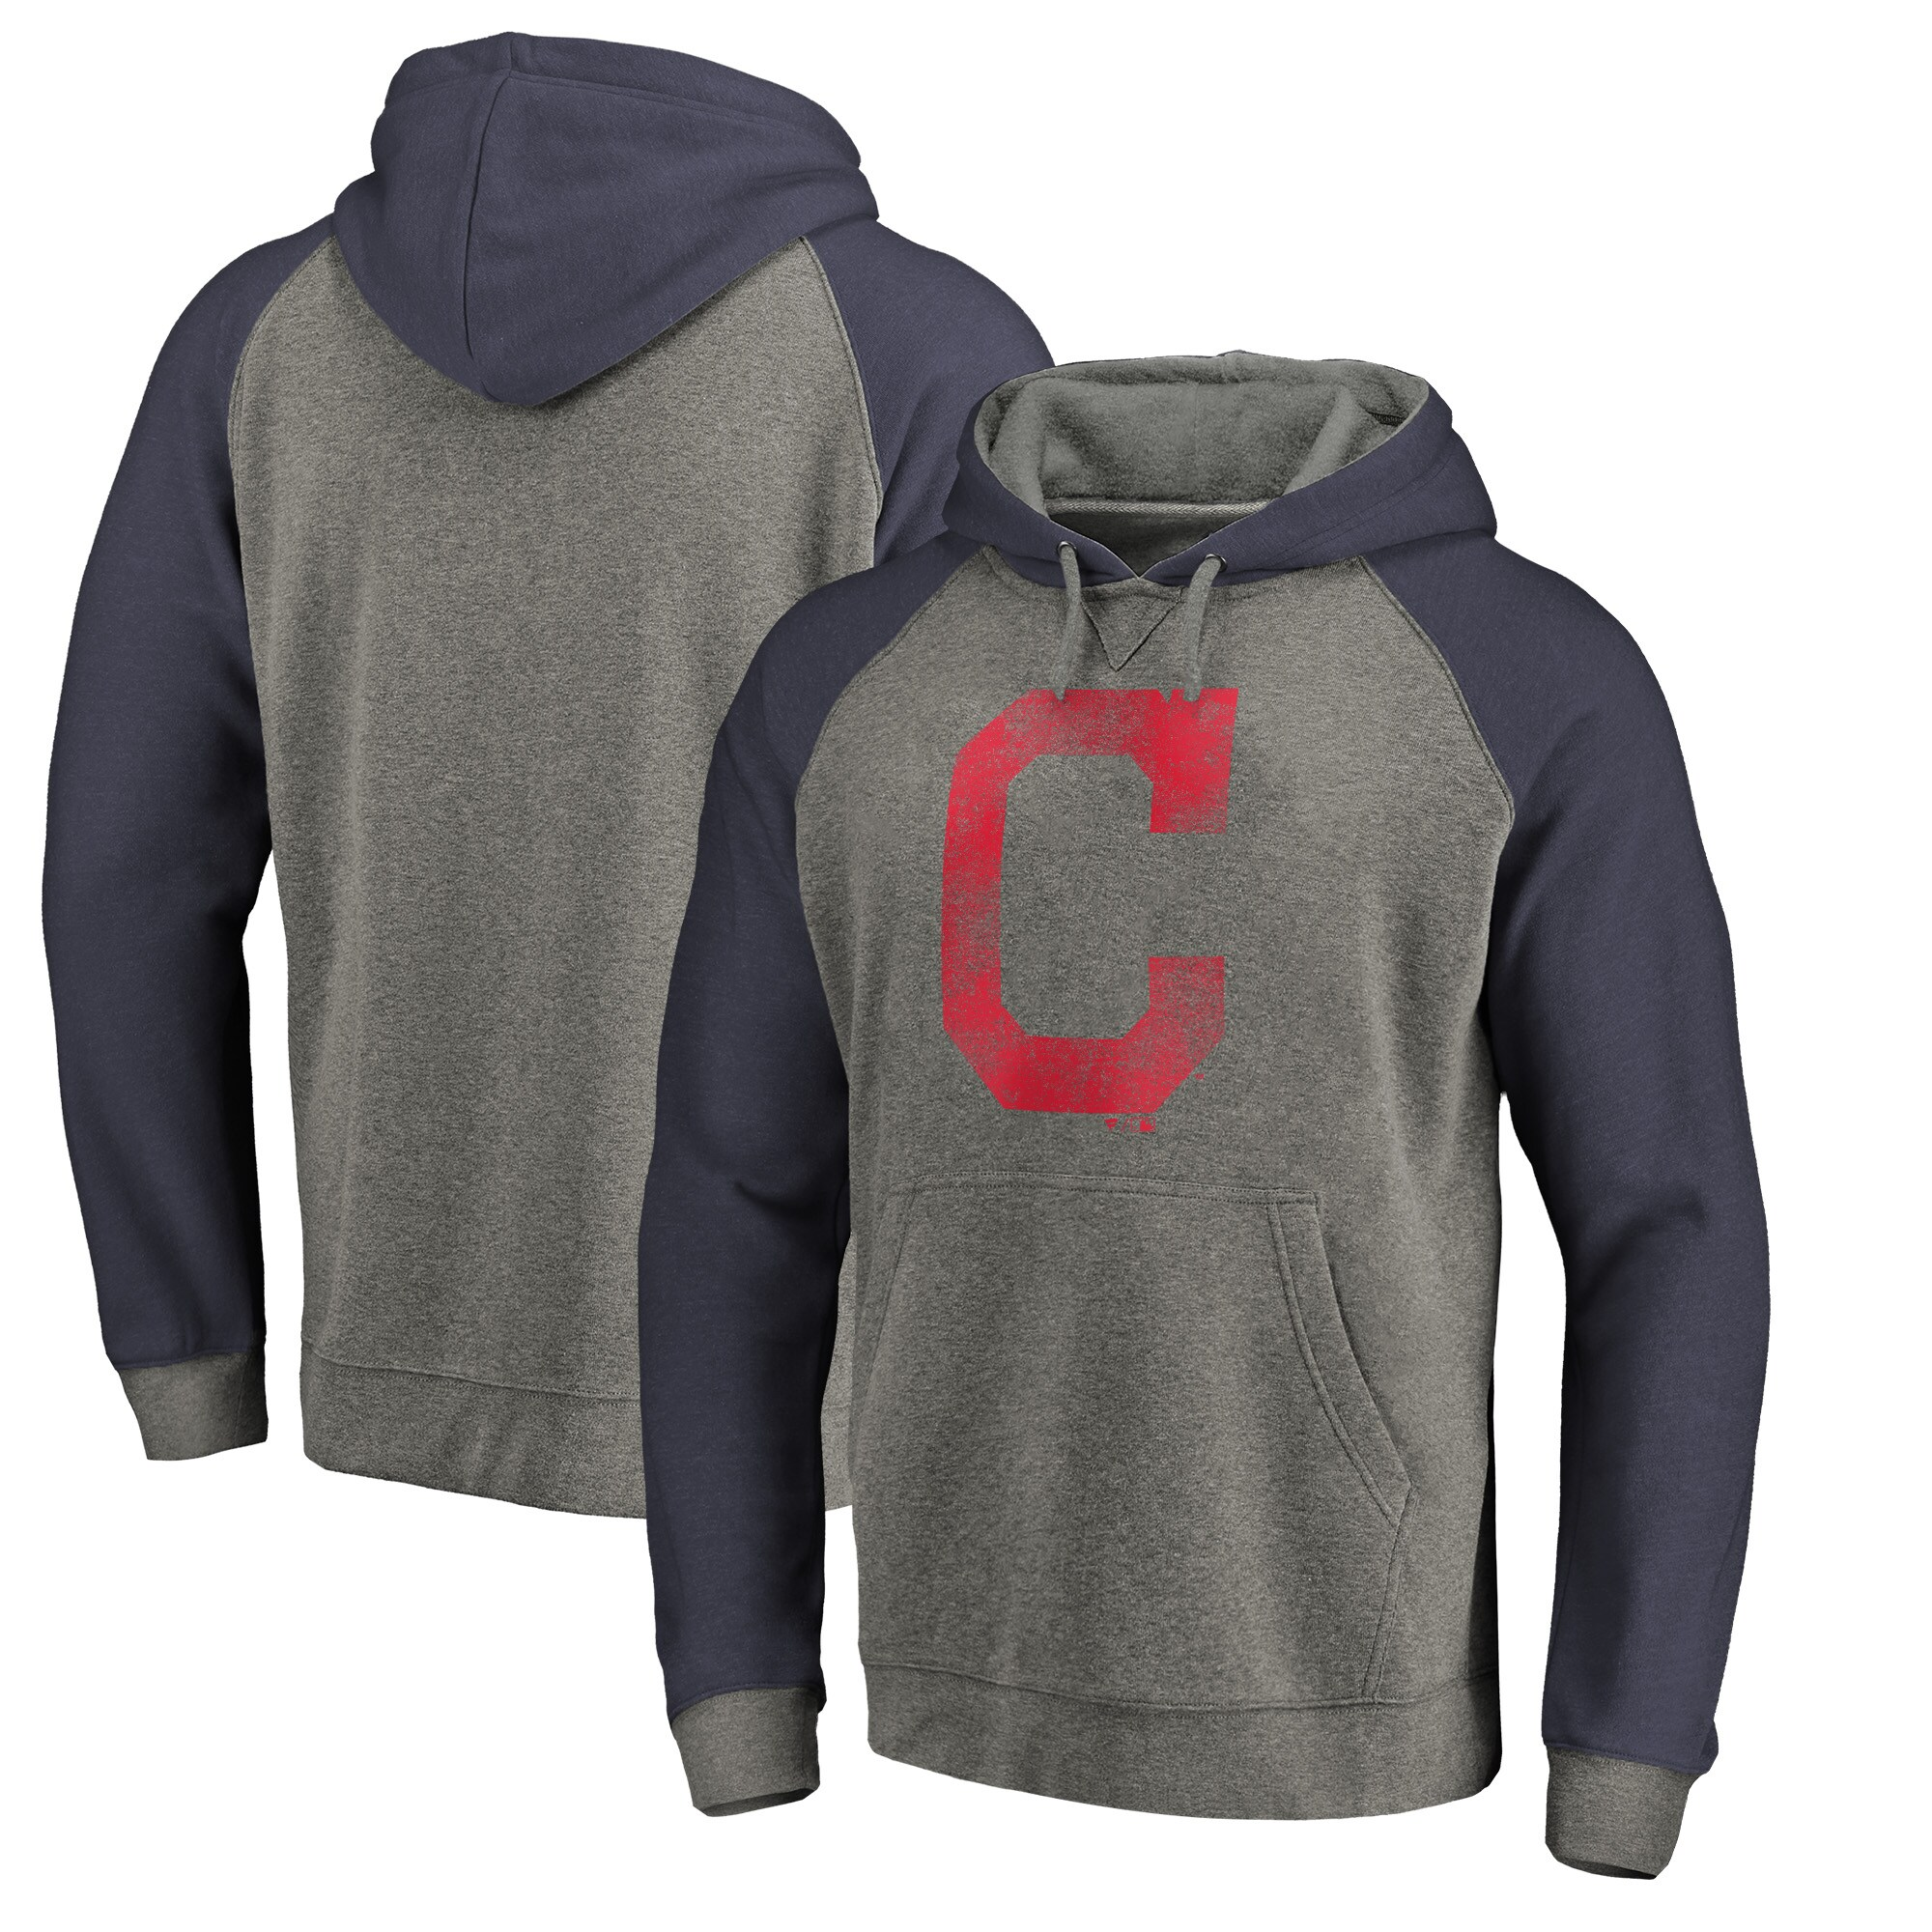 Cleveland Indians Fanatics Branded Distressed Team Logo Tri-Blend Raglan Pullover Hoodie - Gray/Navy